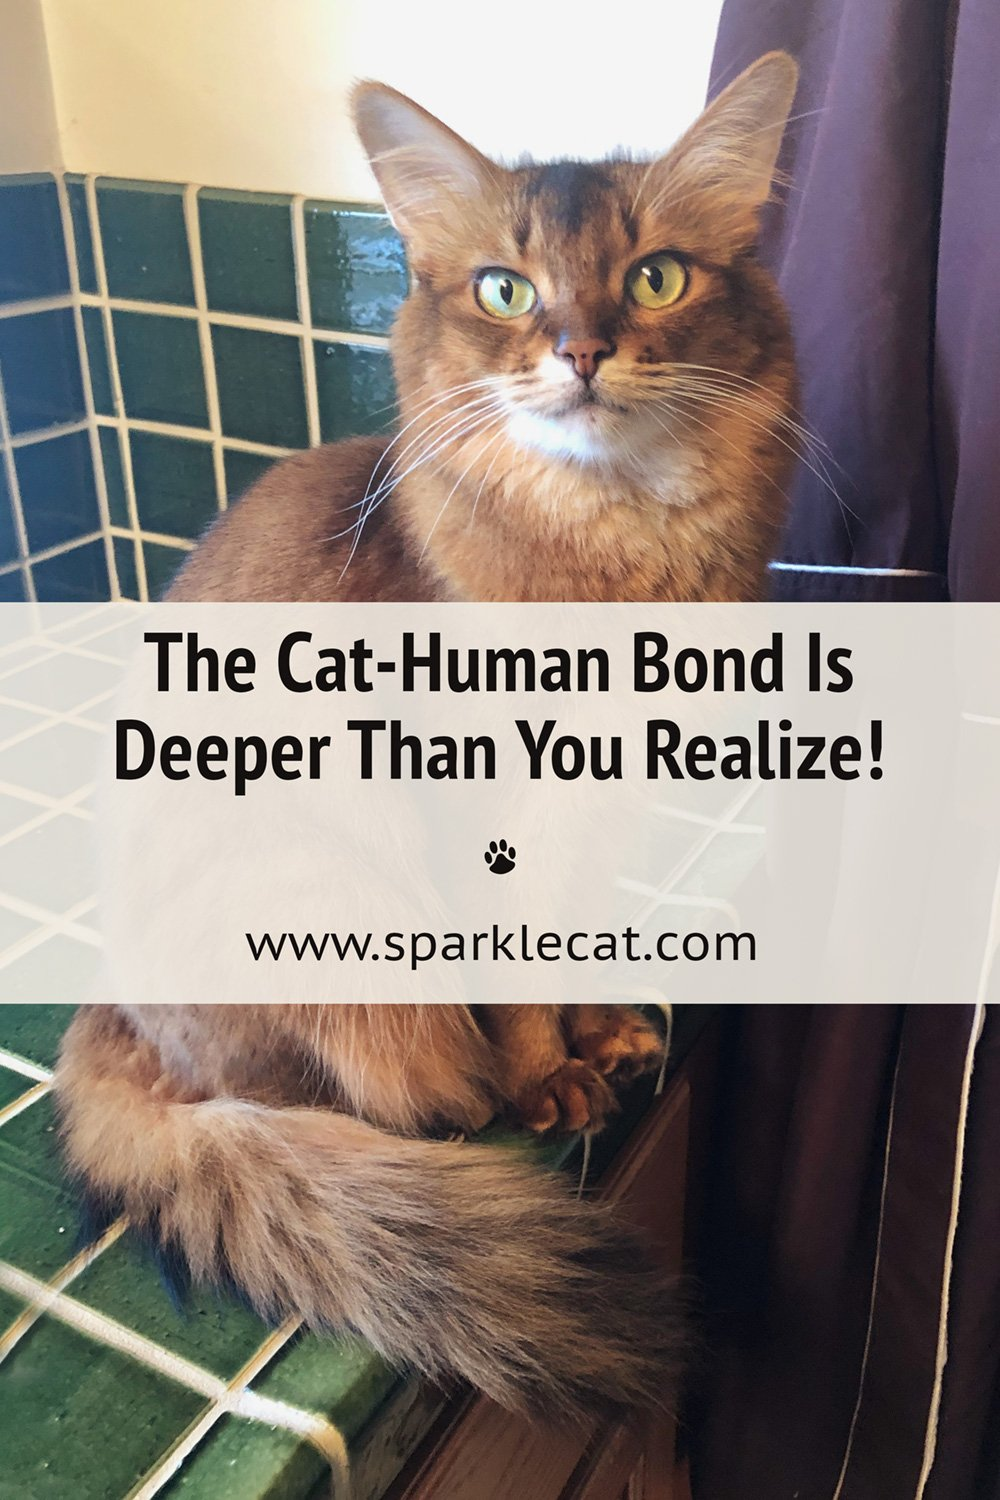 The Cat-Human Bond Is Deeper Than You May Think